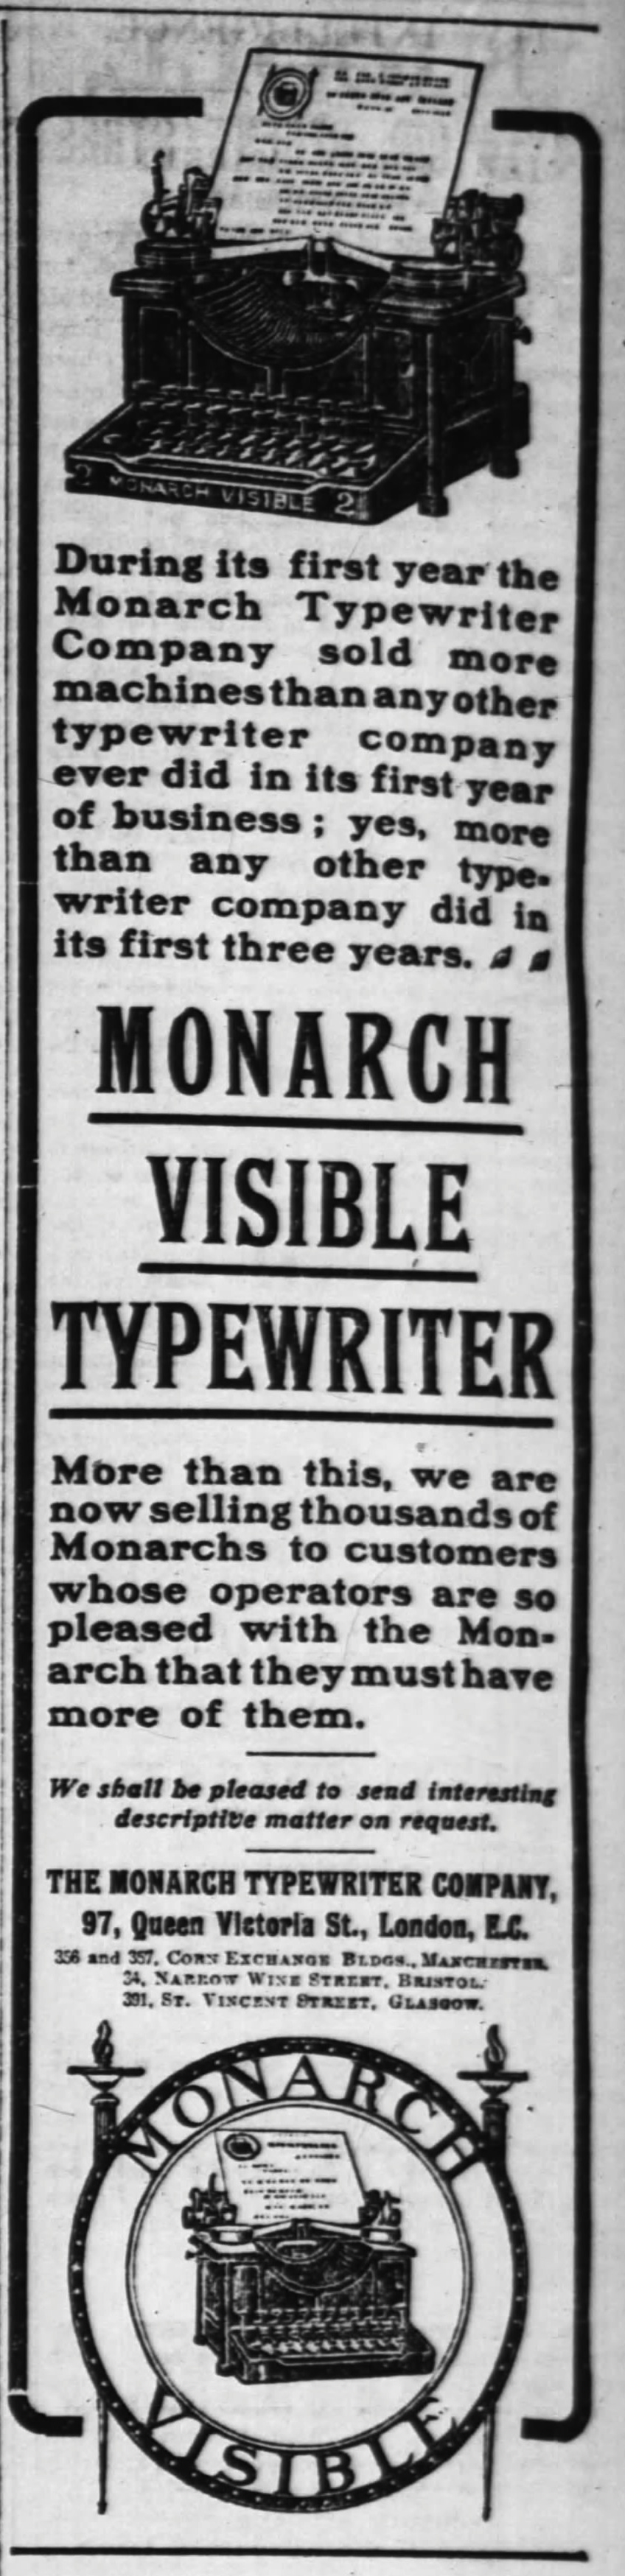 Monarch No. 2 ad - Times, London, March 29, 1906